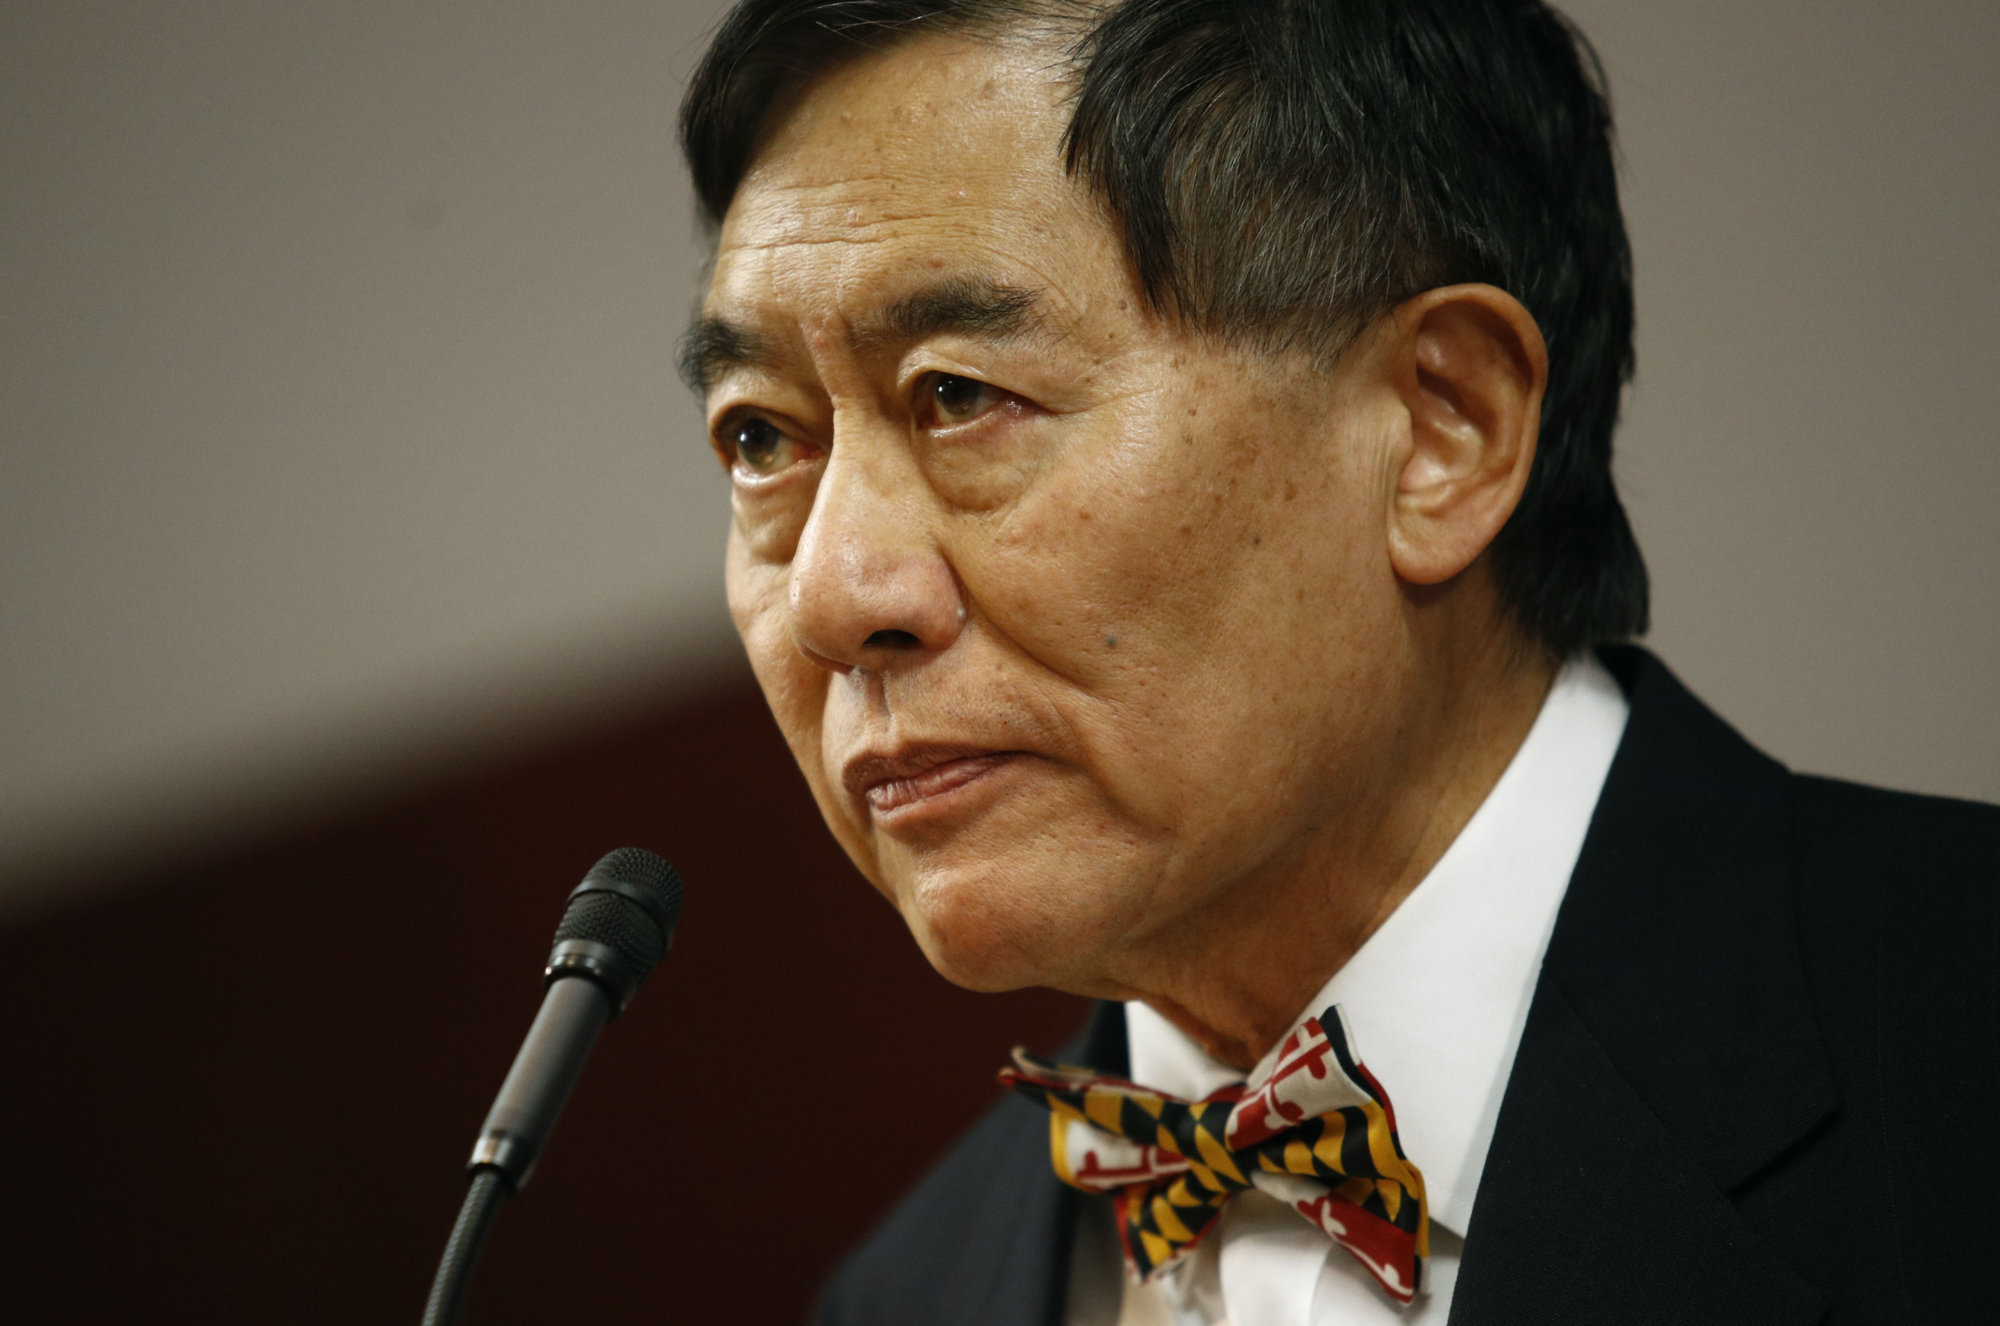 U.Md. President Loh to delay retirement until 2020